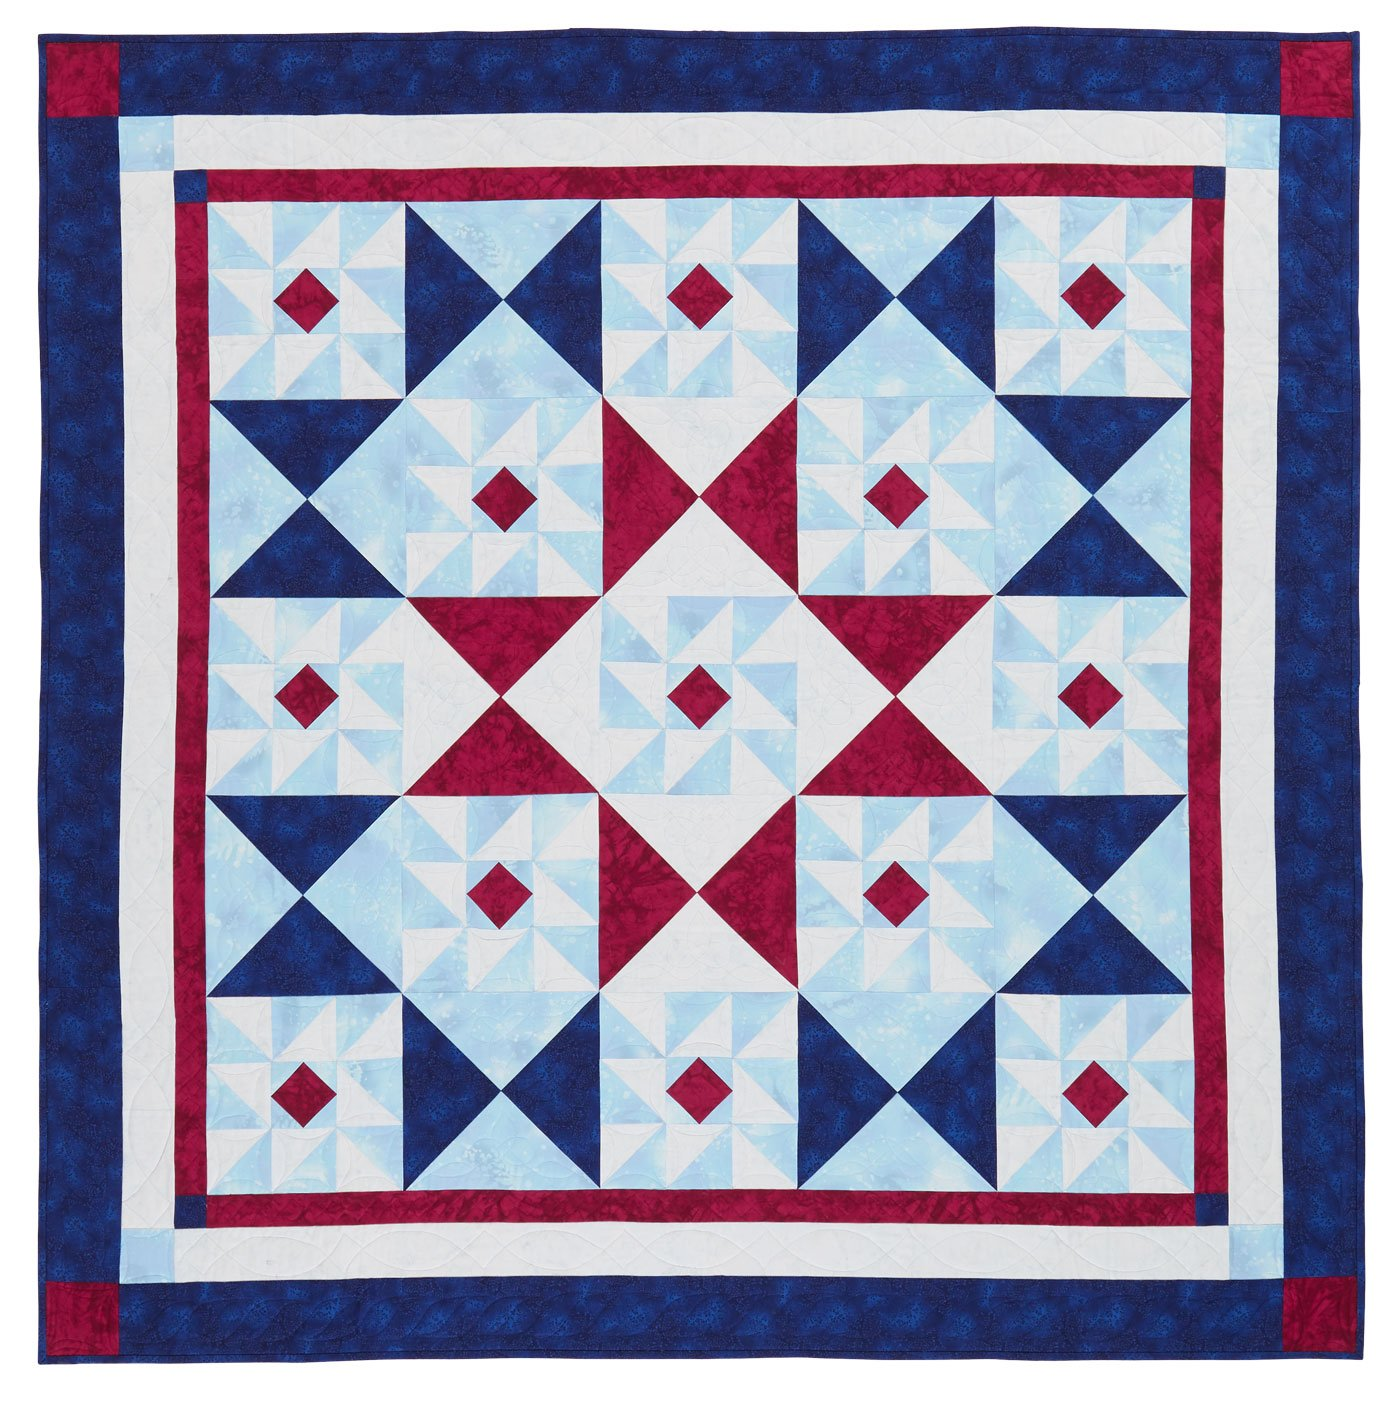 Kit Quilt Sampler Red White and Two